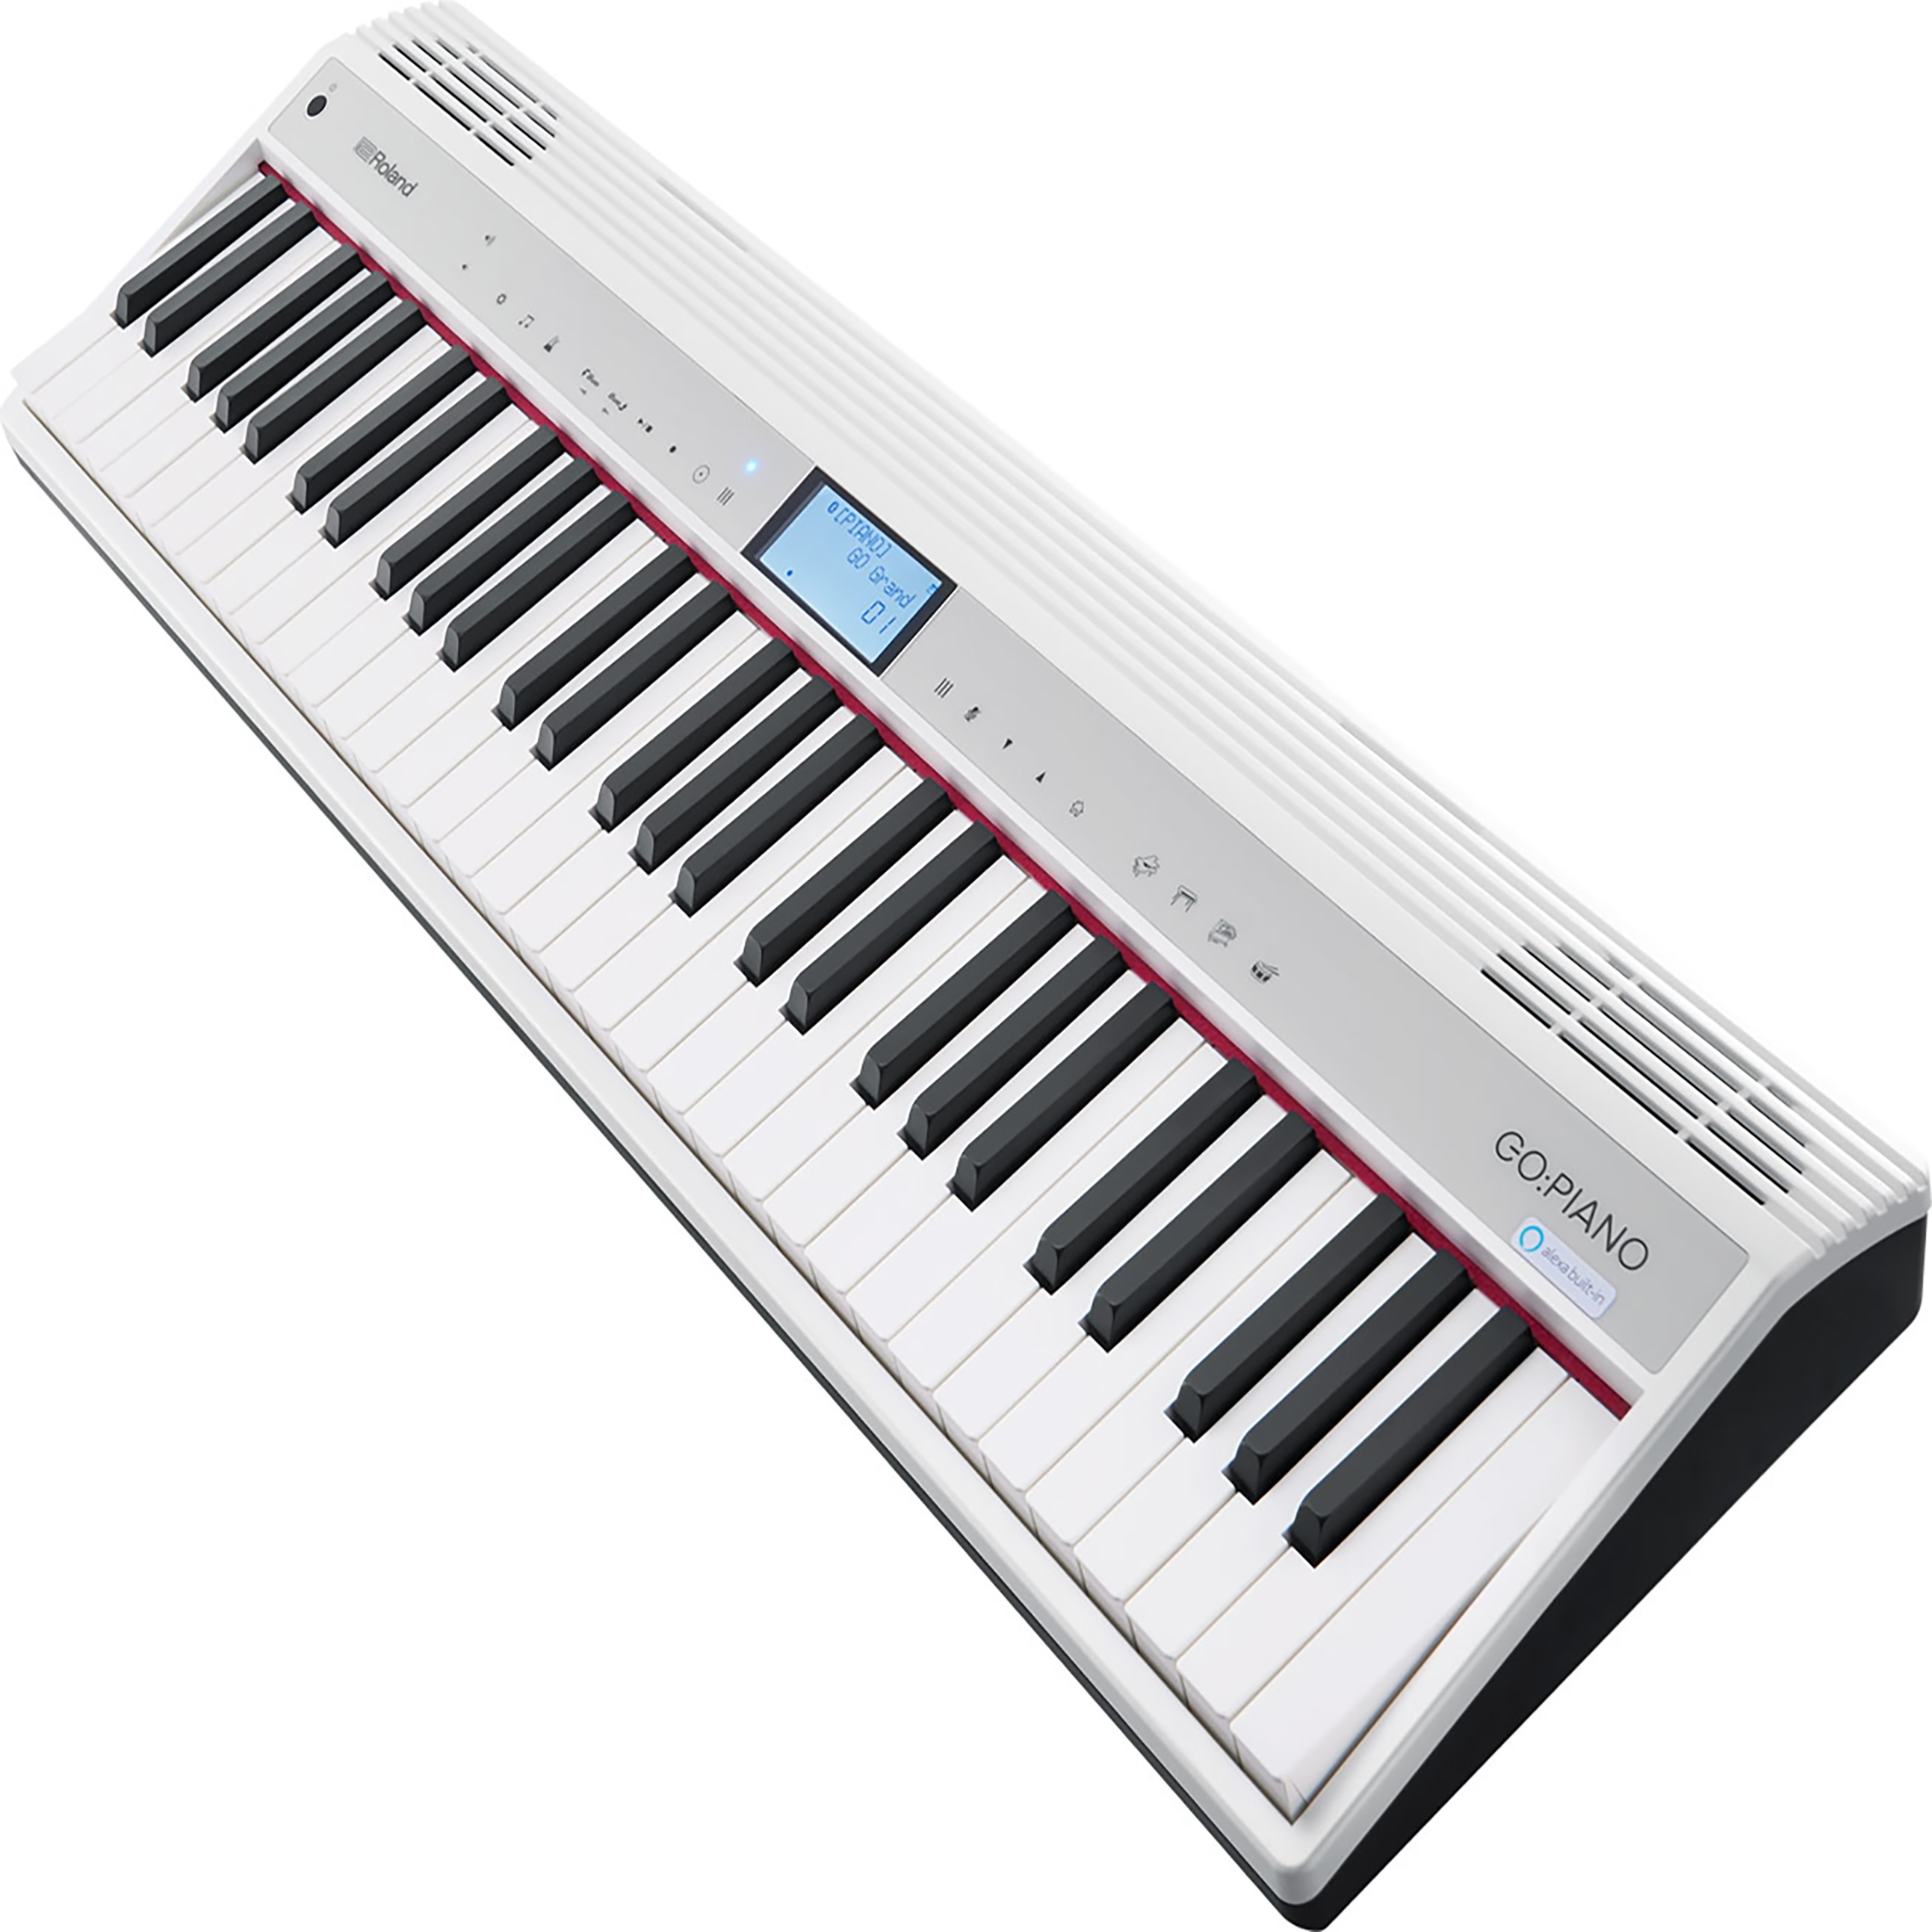 Roland Go Piano 61 Key Music Creation Keyboard With Alexa Voice Command Built In